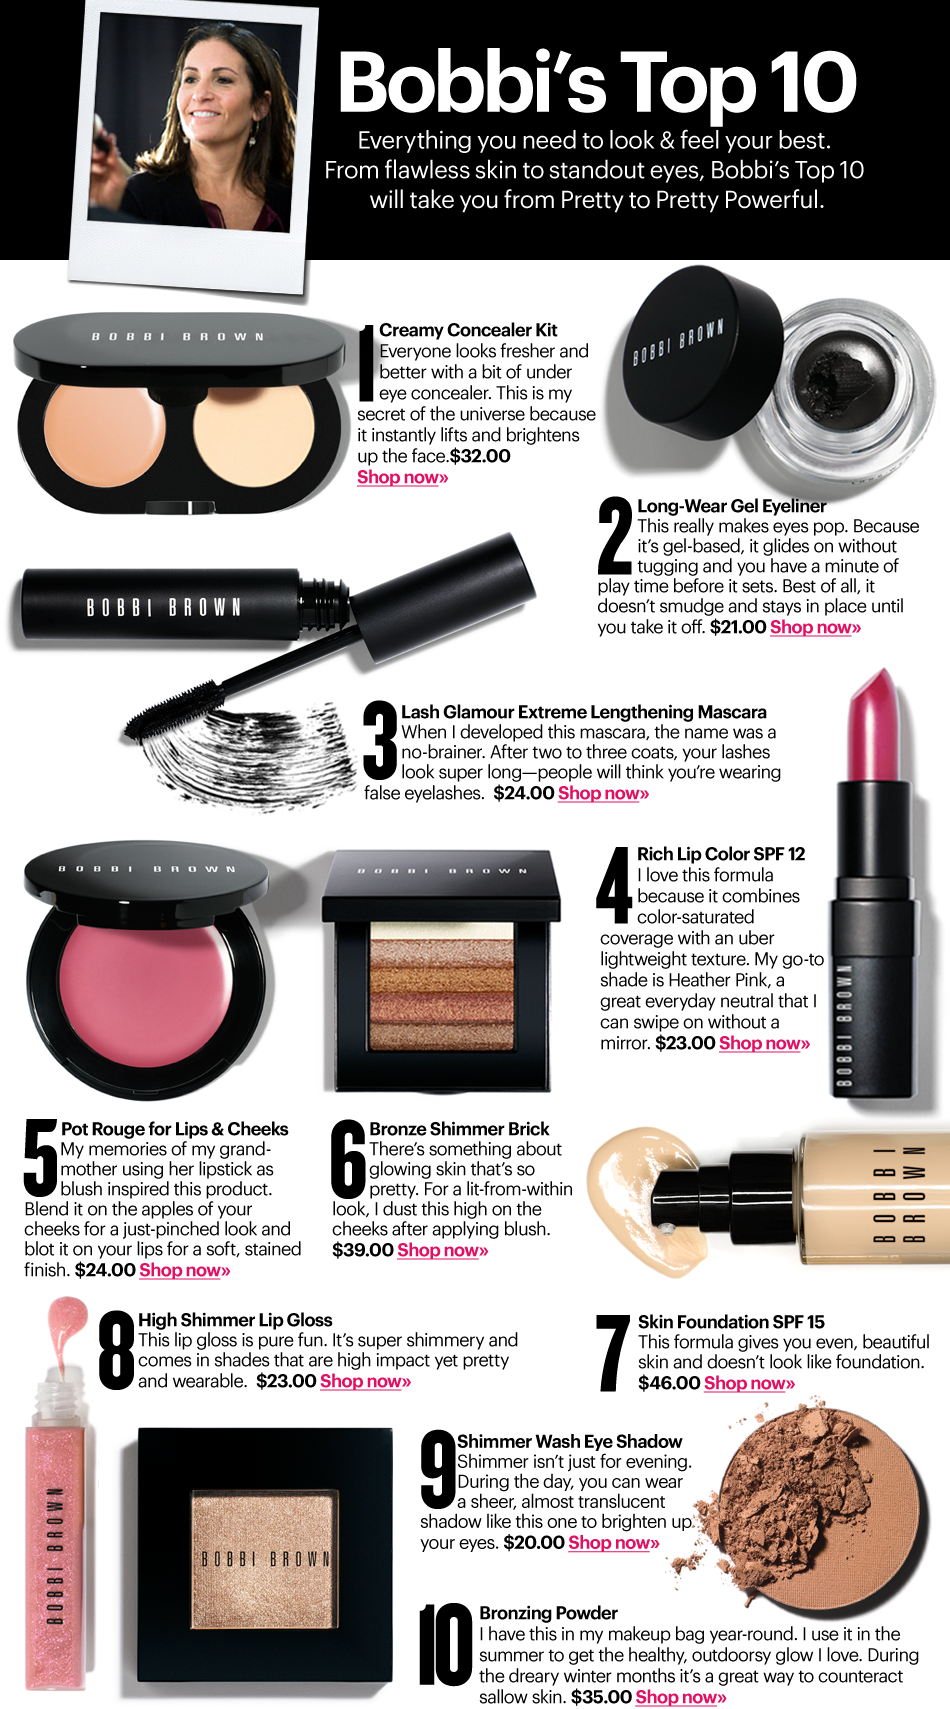 """Bobbi Brown's Top 10 products for your basic cosmetics """"wardrobe"""" -- all listed are hers, but good basic list and as always some useful tips"""